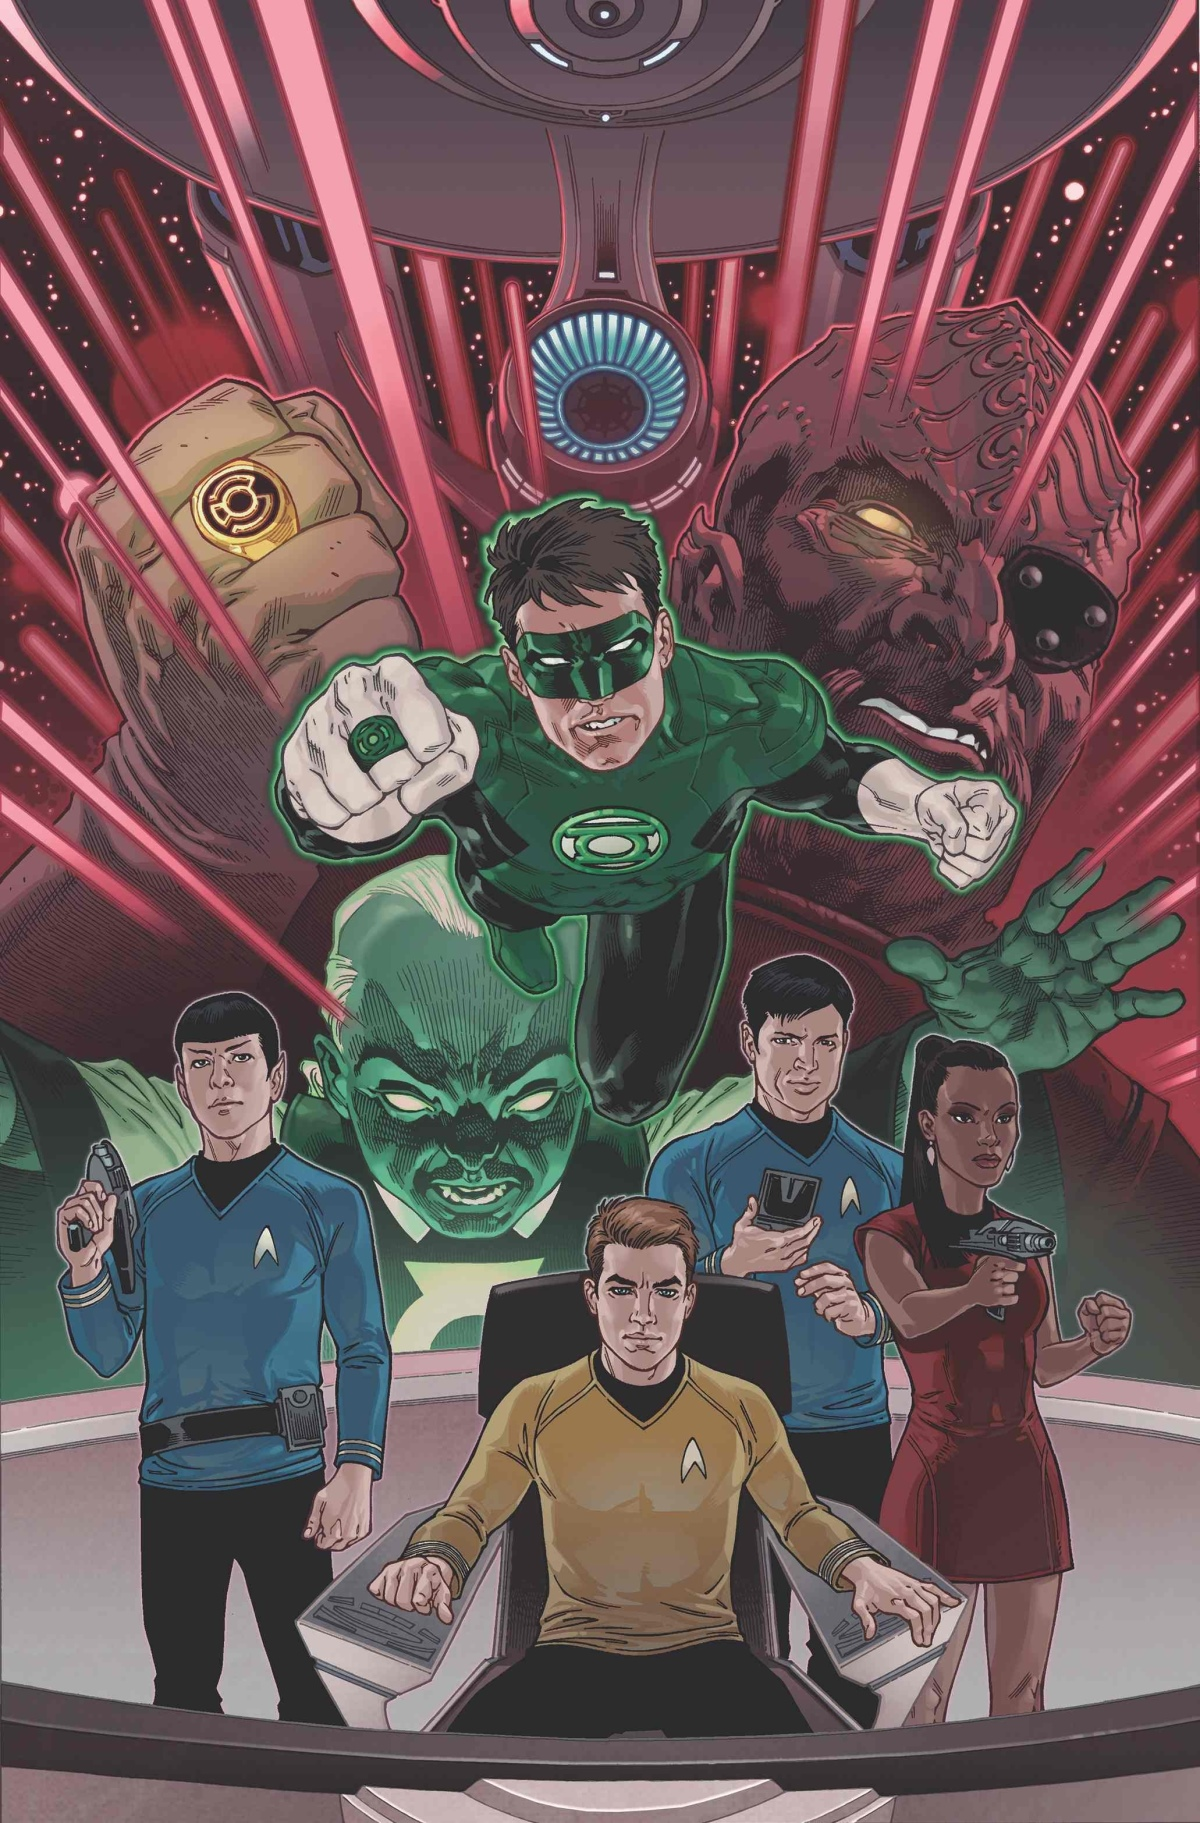 http://screenrant.com/wp-content/uploads/Green-Lantern-Star-Trek-Crossover-Comic.jpg